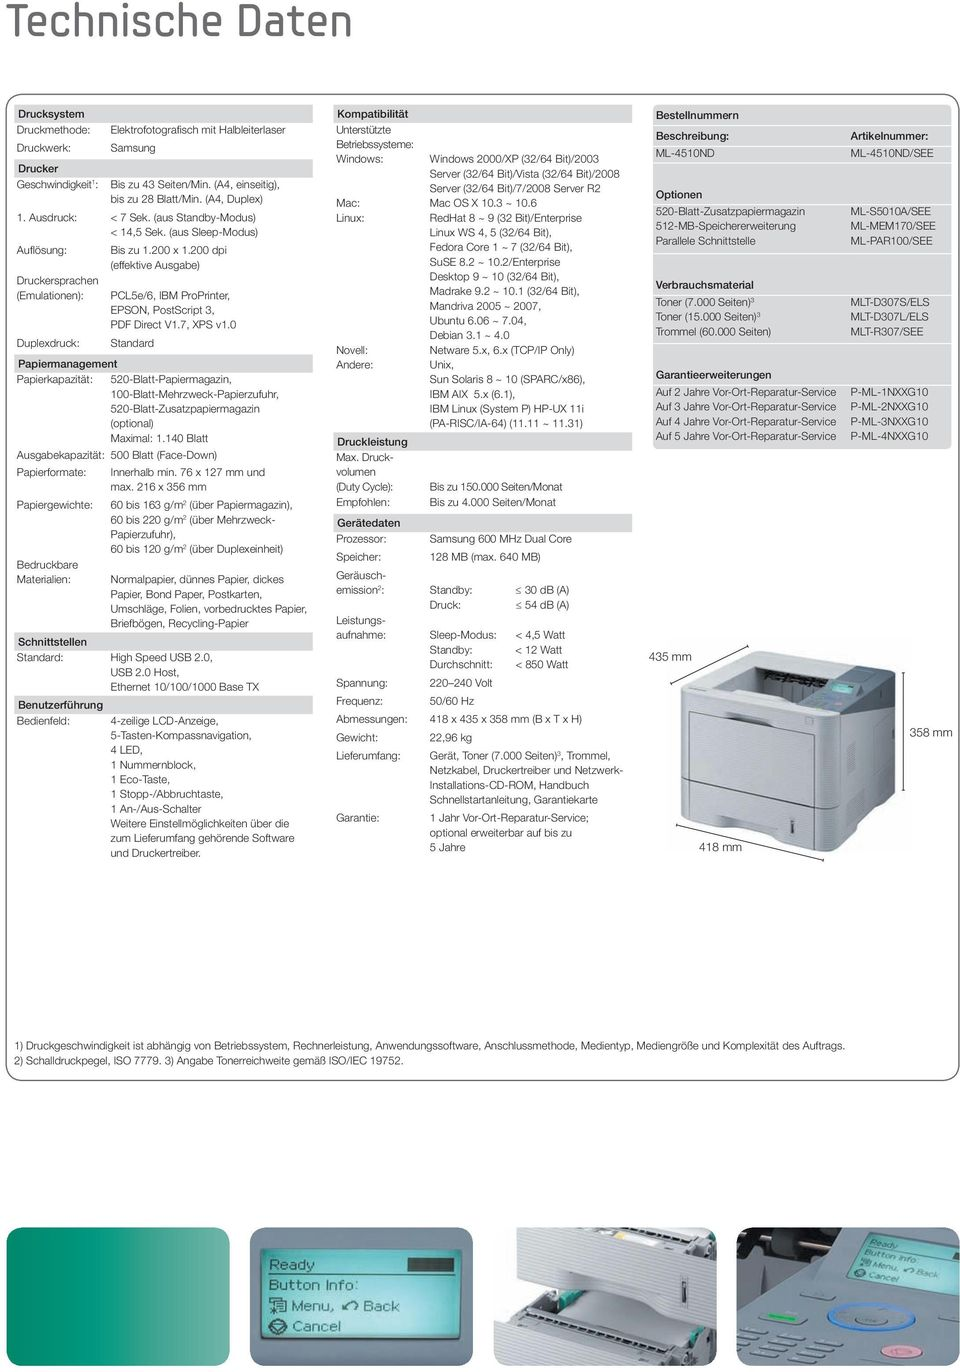 200 dpi (effektive Ausgabe) Druckersprachen (Emulationen): Duplexdruck: Papiermanagement Papierkapazität: PCL5e/6, IBM ProPrinter, EPSON, PostScript 3, PDF Direct V1.7, XPS v1.